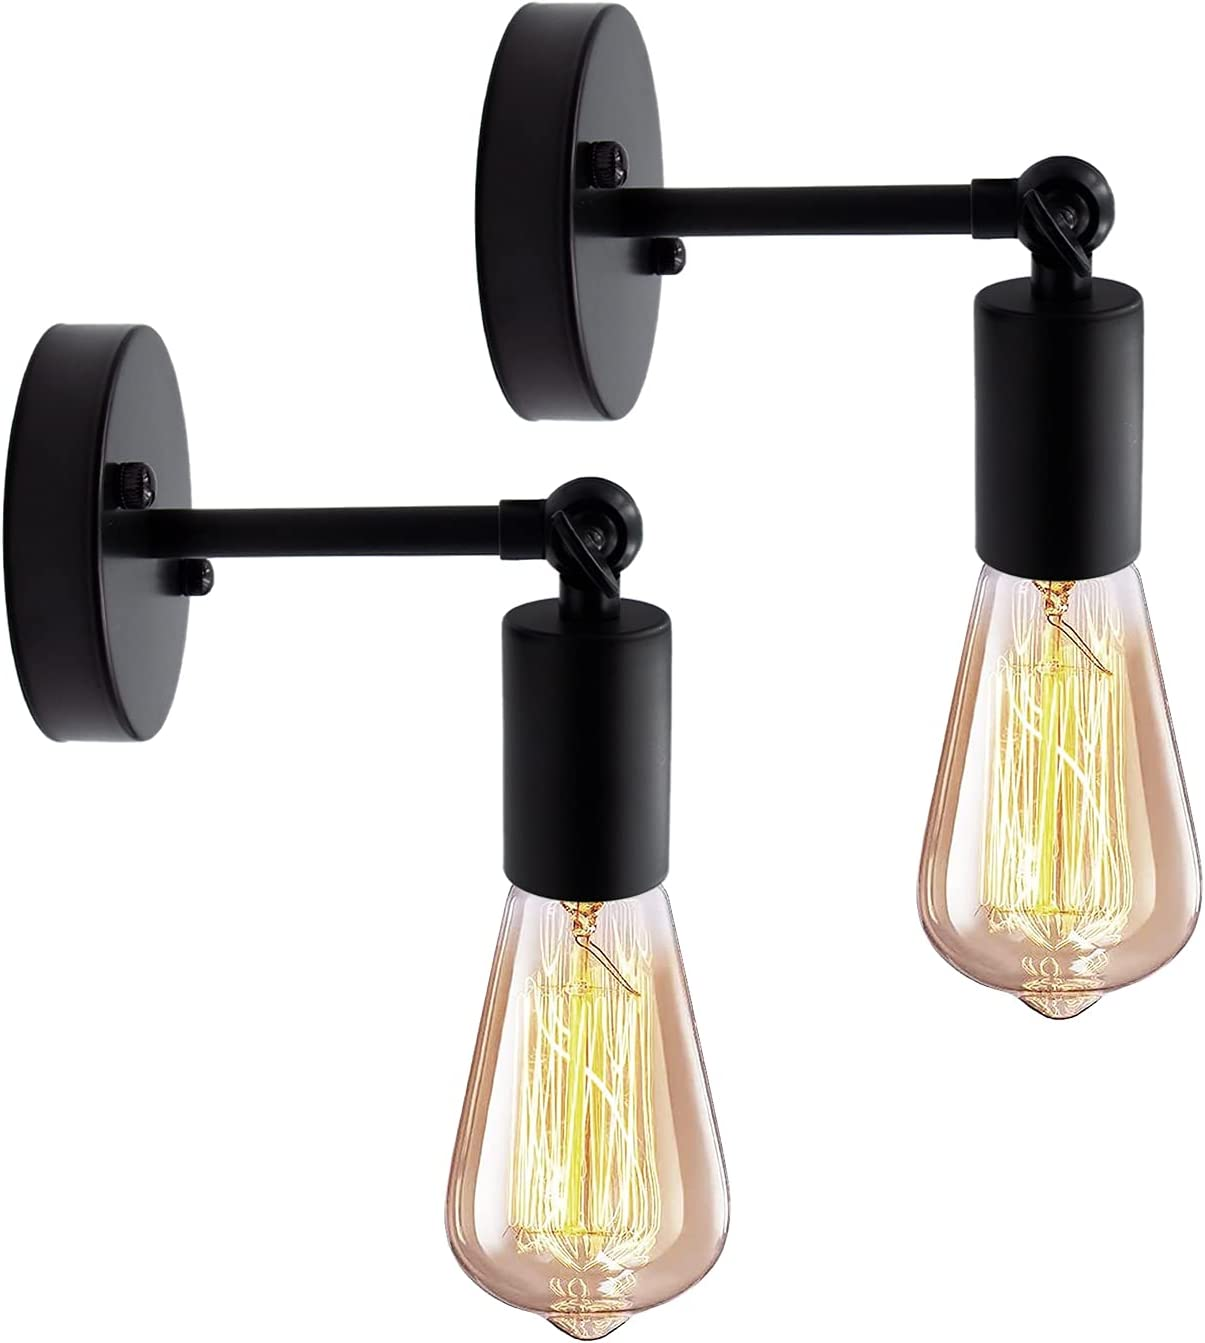 Bathroom Wall Sconce Genuine Free Shipping Set of Weekly update Industrial Vintage Blac Lamps 2